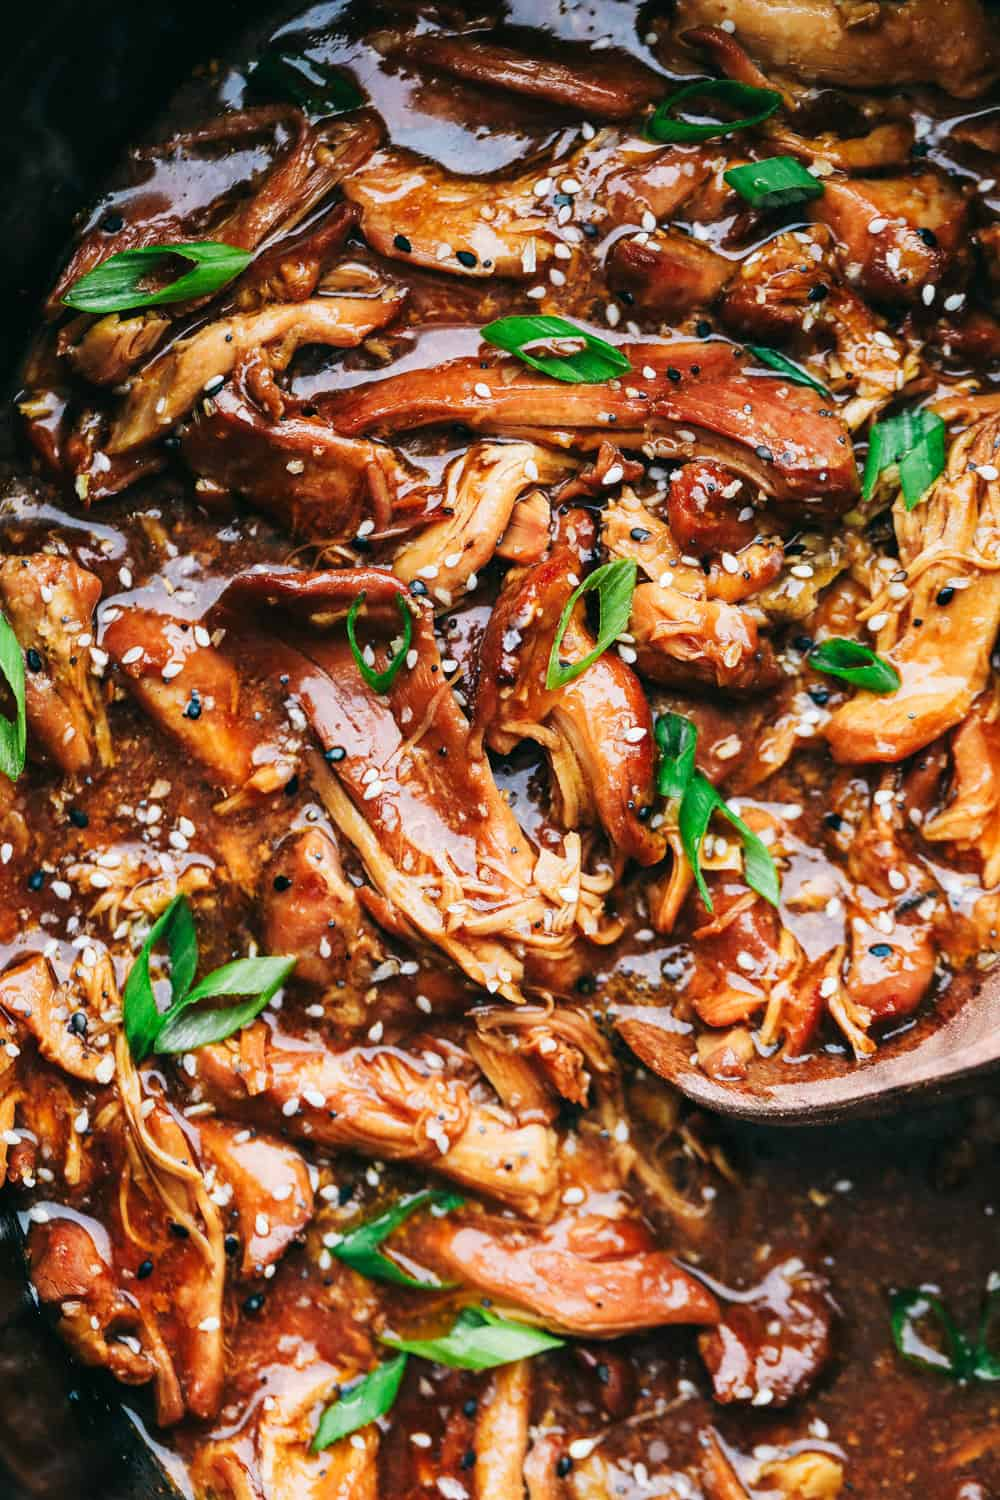 Honey garlic chicken in a slow cooker with a wooden spoon stirring it up.